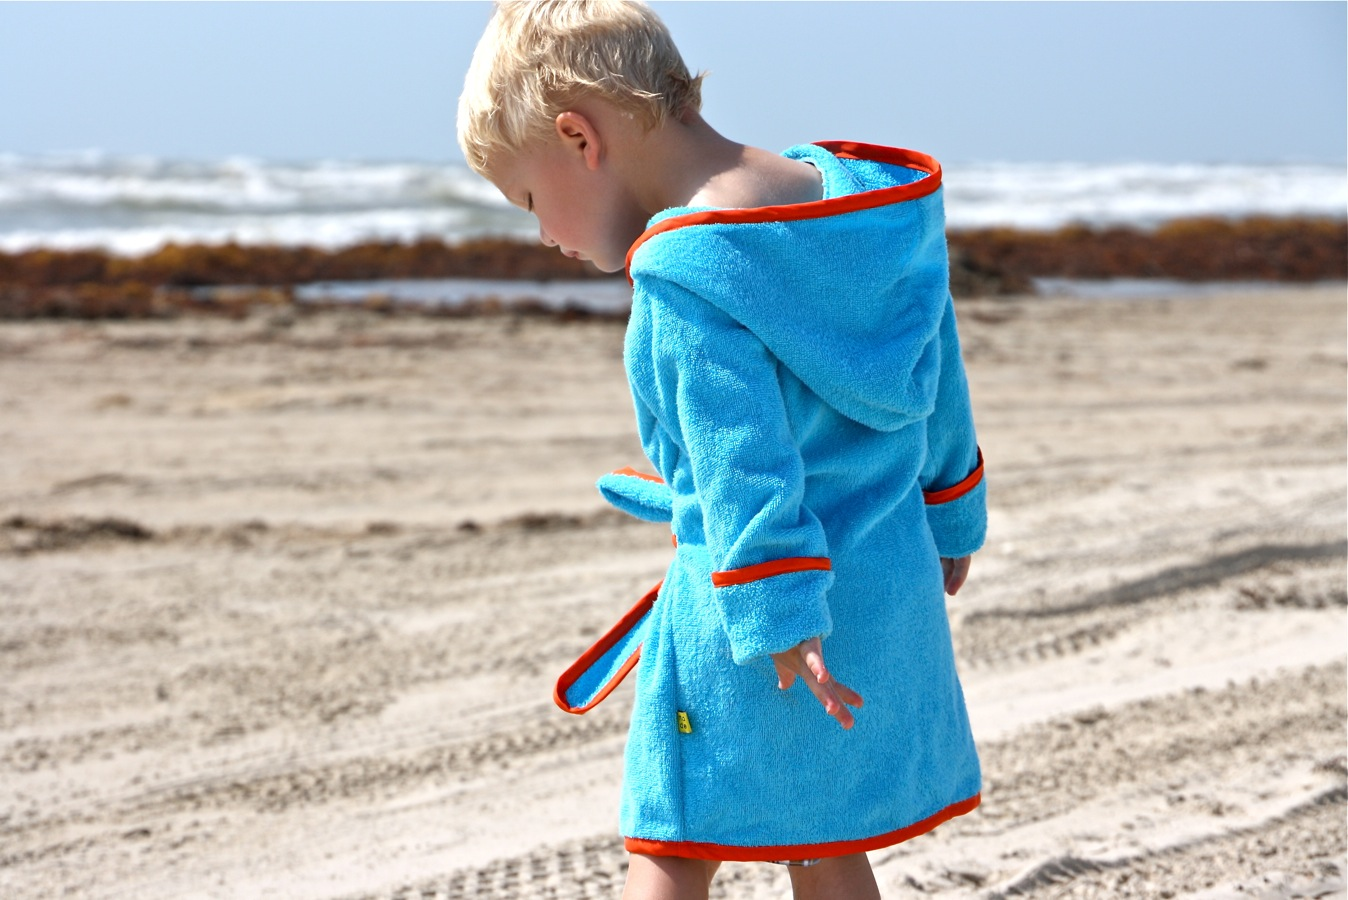 You searched for: boys beach robe! Etsy is the home to thousands of handmade, vintage, and one-of-a-kind products and gifts related to your search. No matter what you're looking for or where you are in the world, our global marketplace of sellers can help you find unique and affordable options. Let's get started!